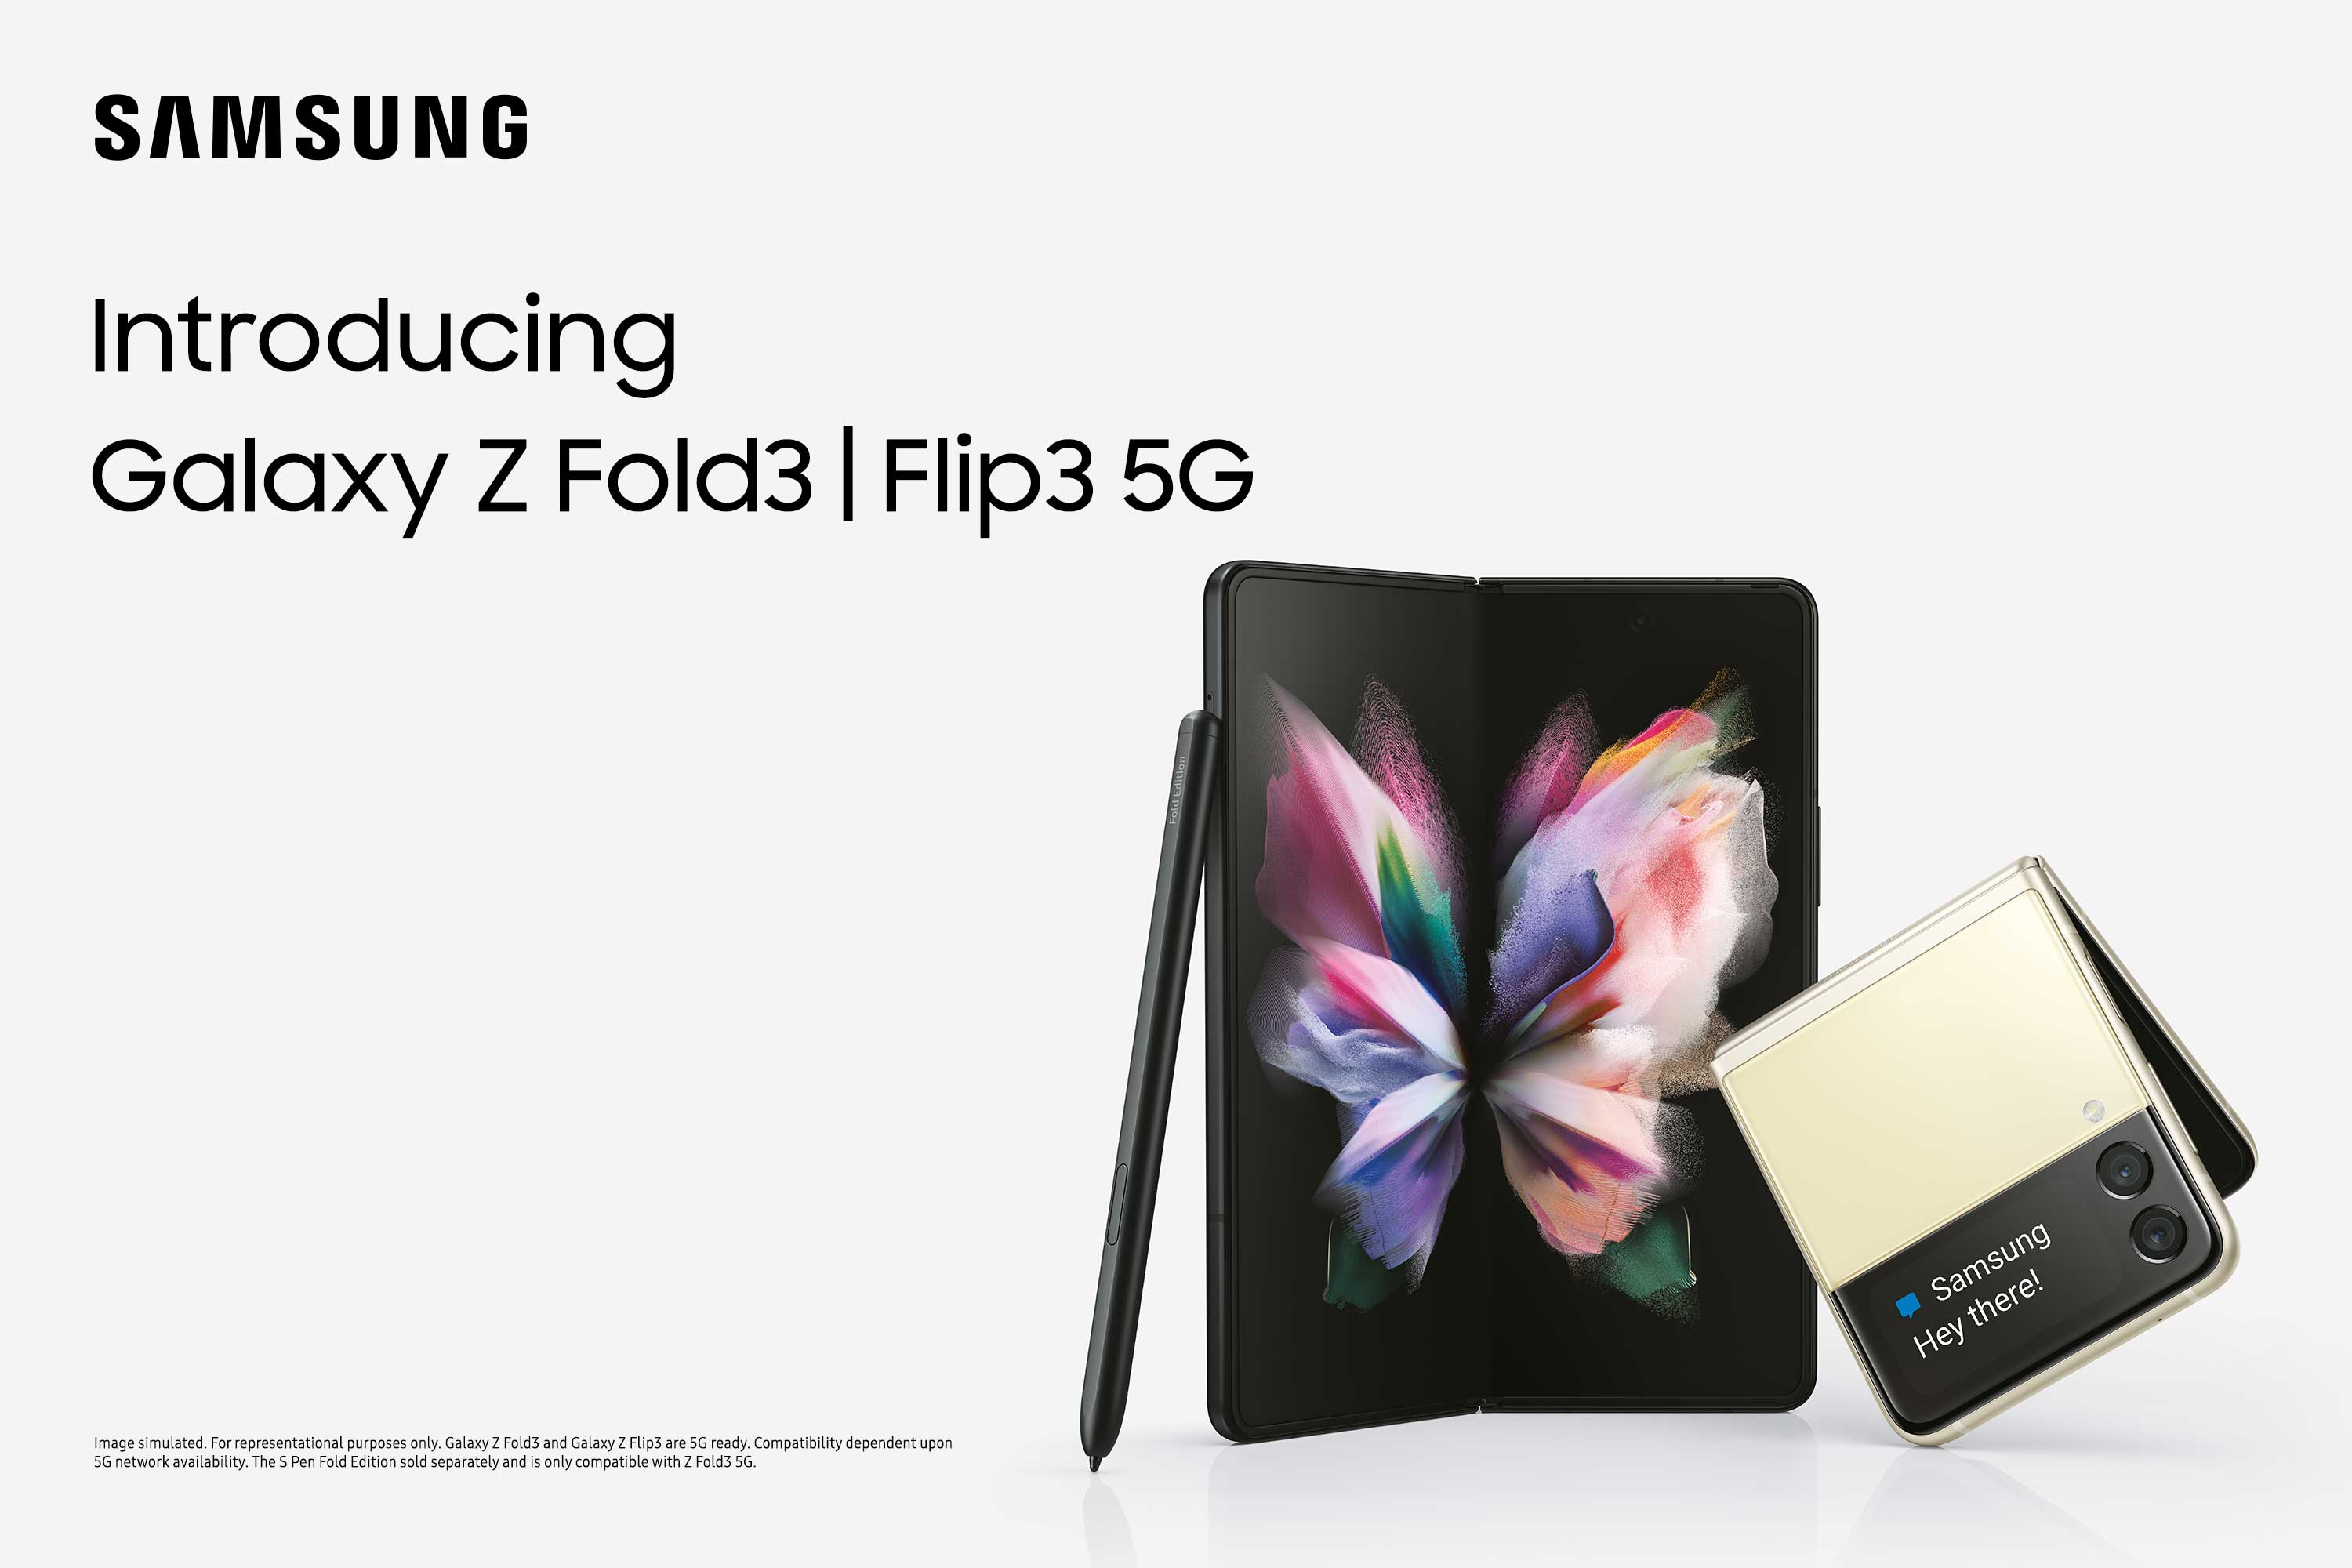 Samsung India Announces the Launch of Galaxy Z Fold3 5G, Galaxy Z Flip3 5G,  the Third Generation of Foldable Smartphones – Samsung Newsroom India